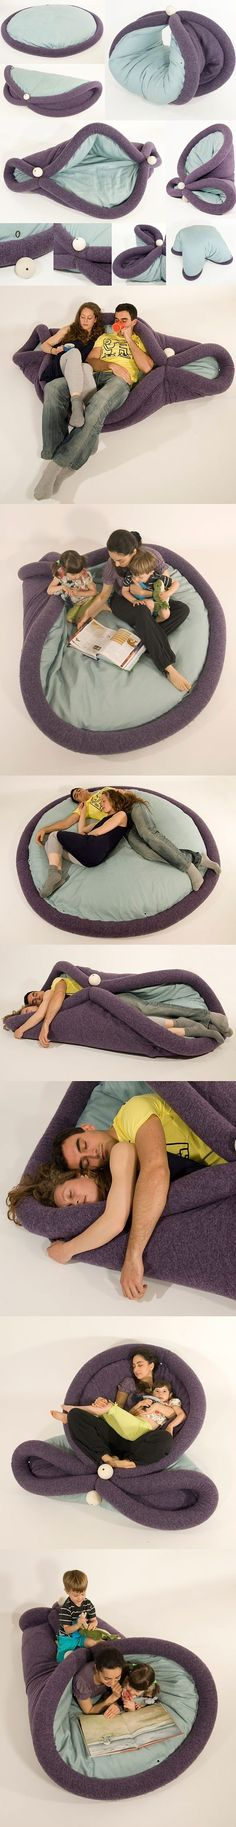 Transformable pad for lazy living.